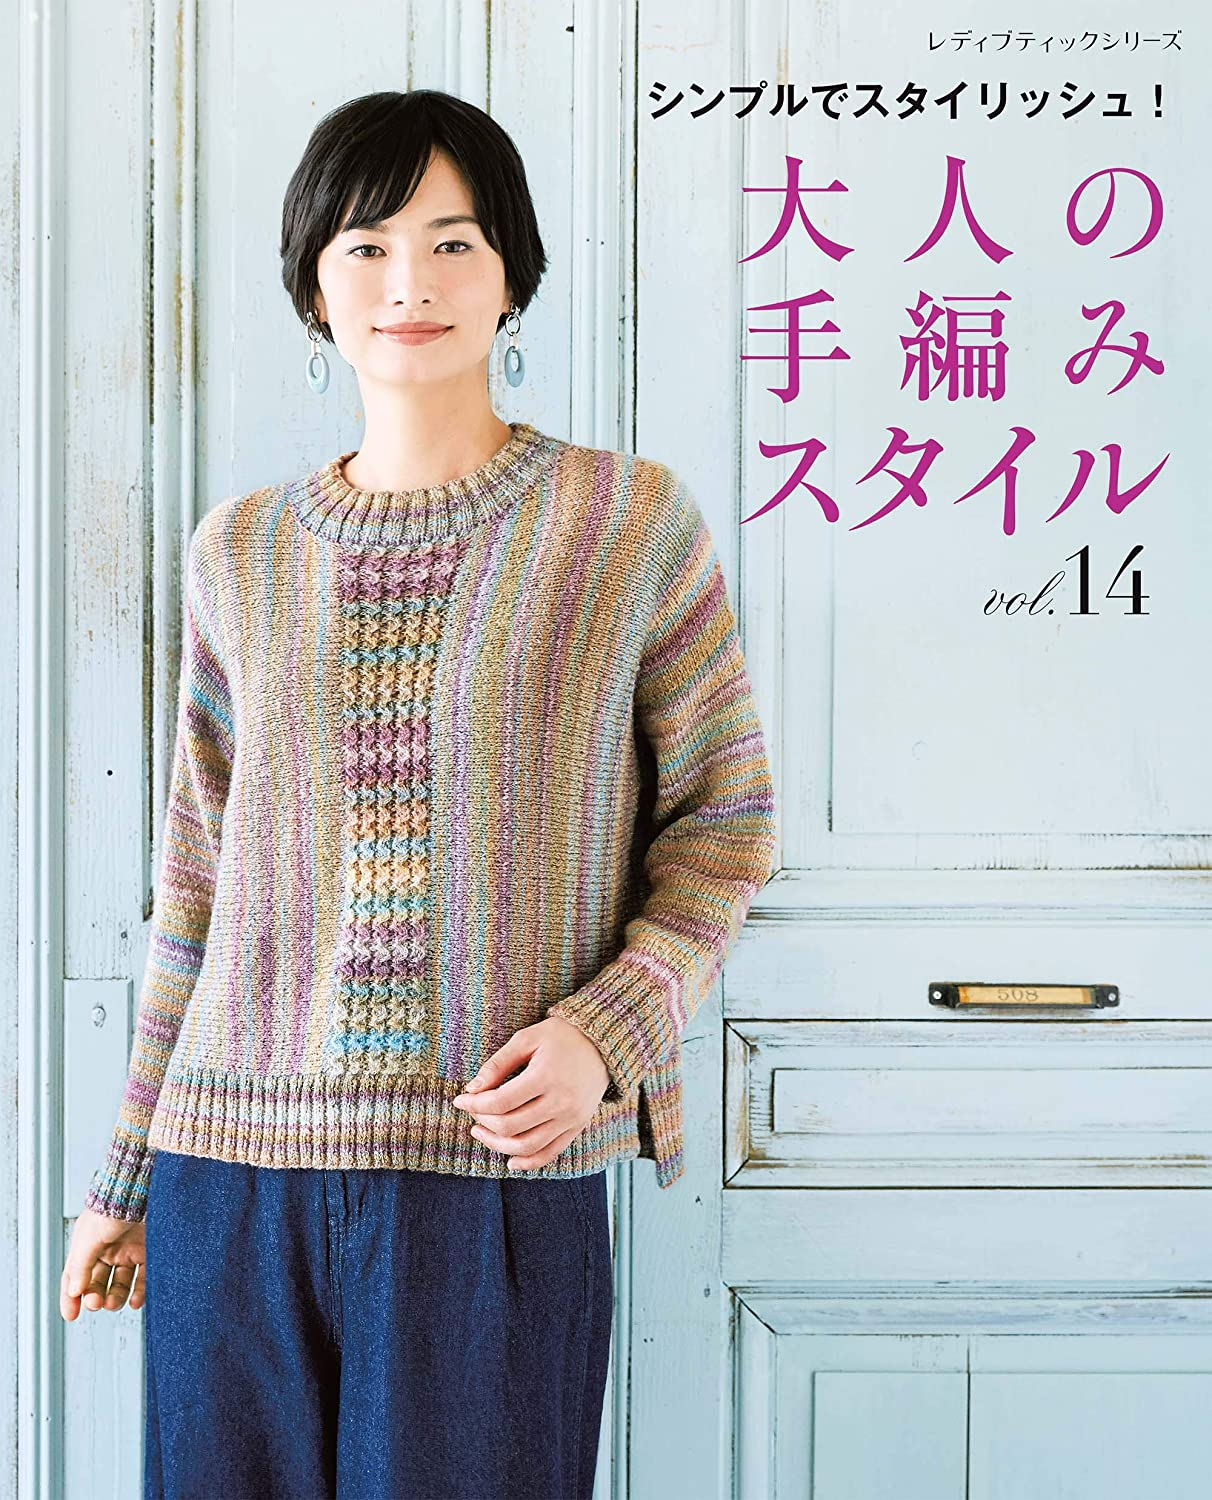 Adult hand-knitting style vol.14